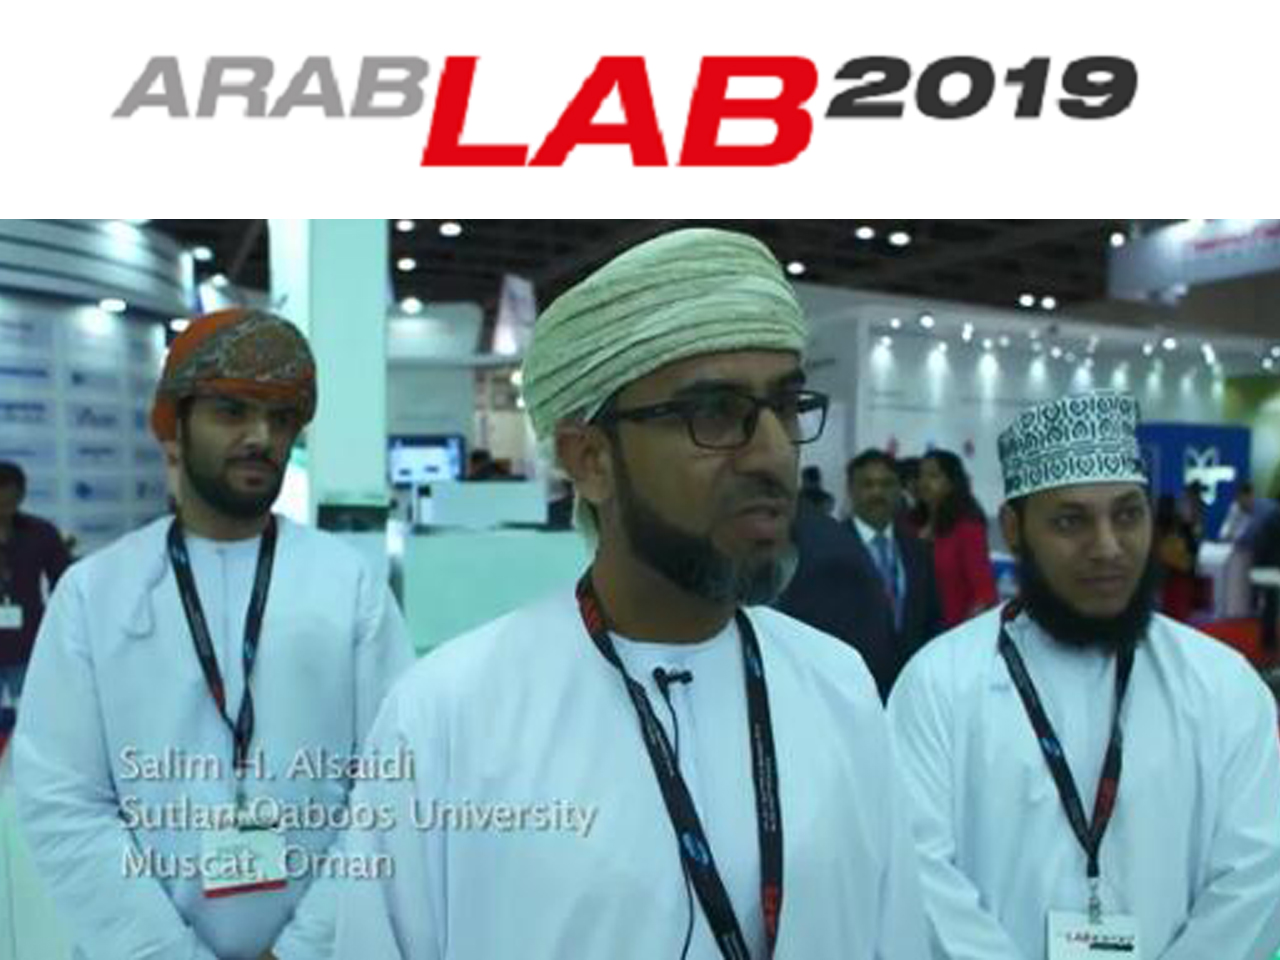 laboratoire arabe 2019 expo